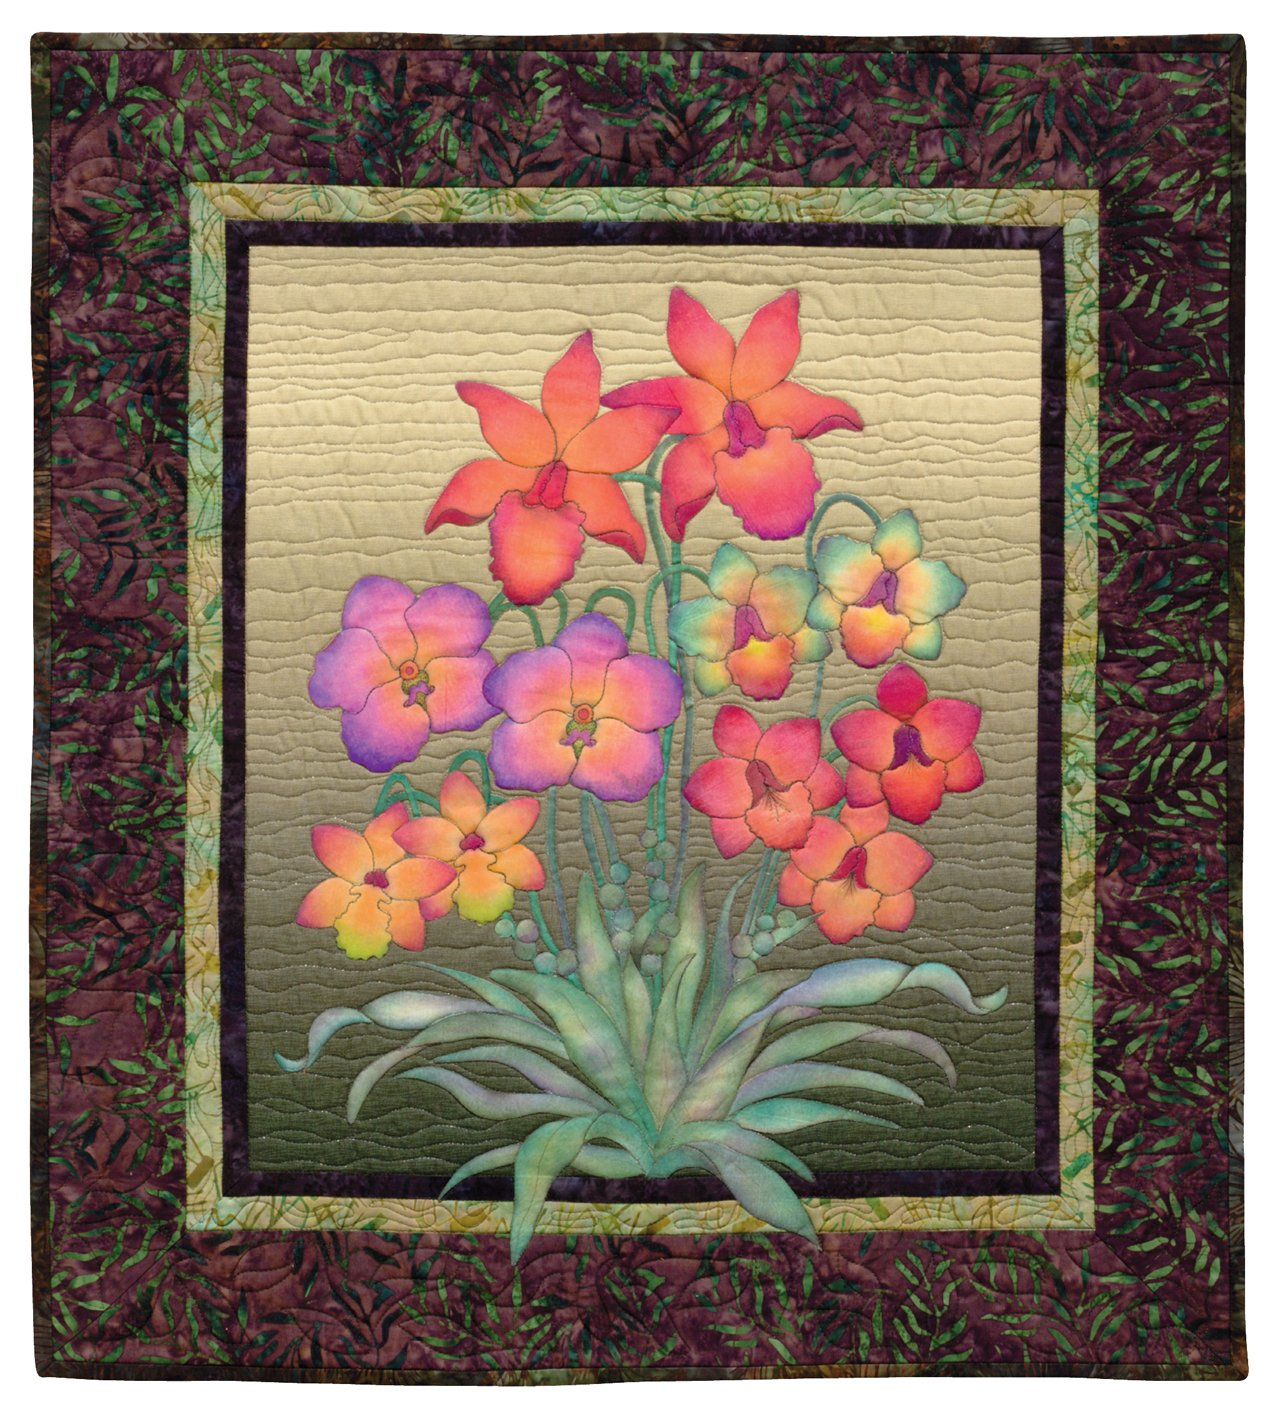 Creative Quilts from Your Crayon Box: Melt-n-Blend Meets Fusible Applique by That Patchwork Place (Image #8)